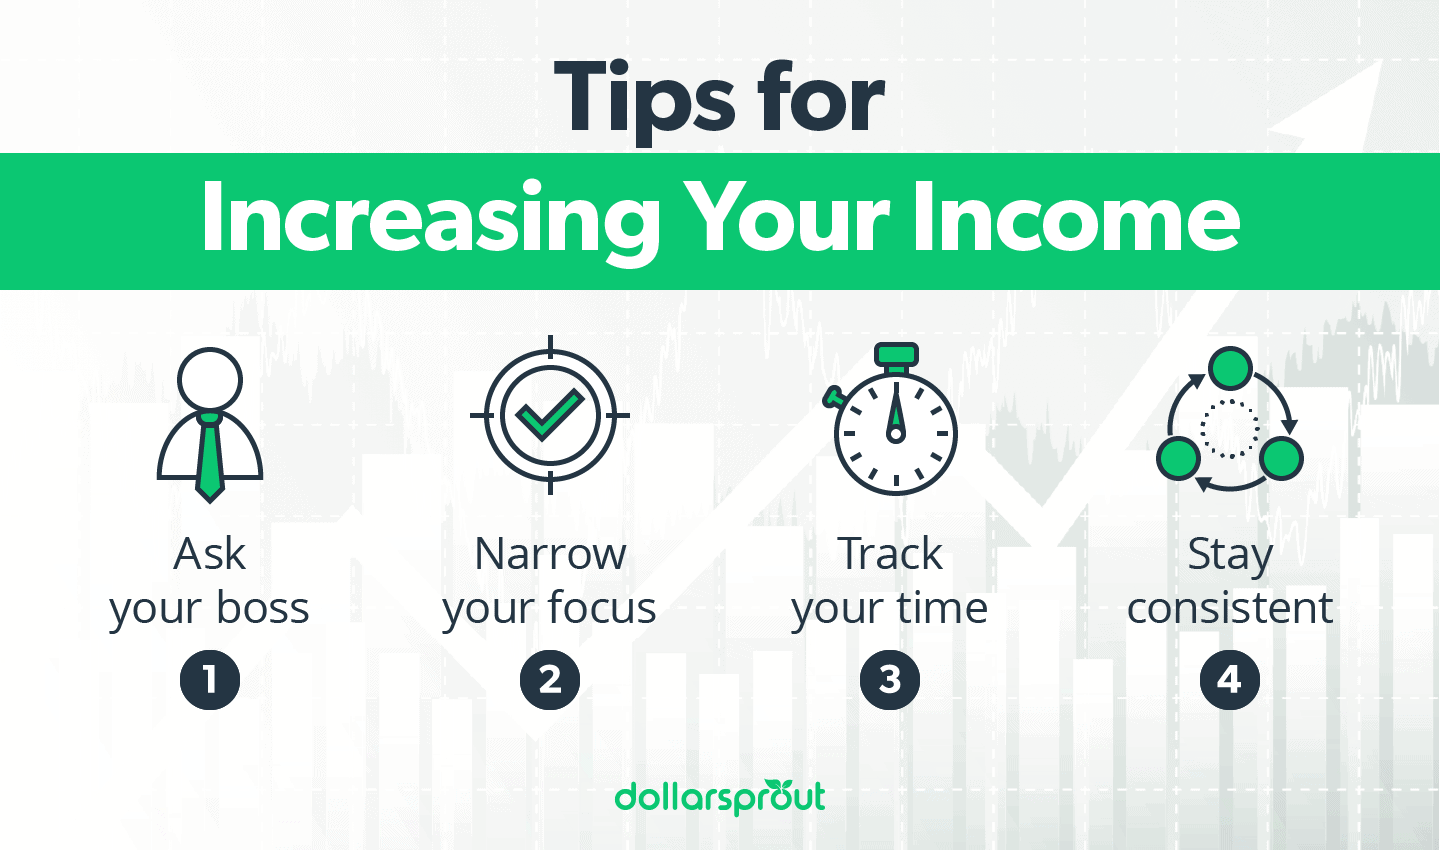 Tips for Increasing Income